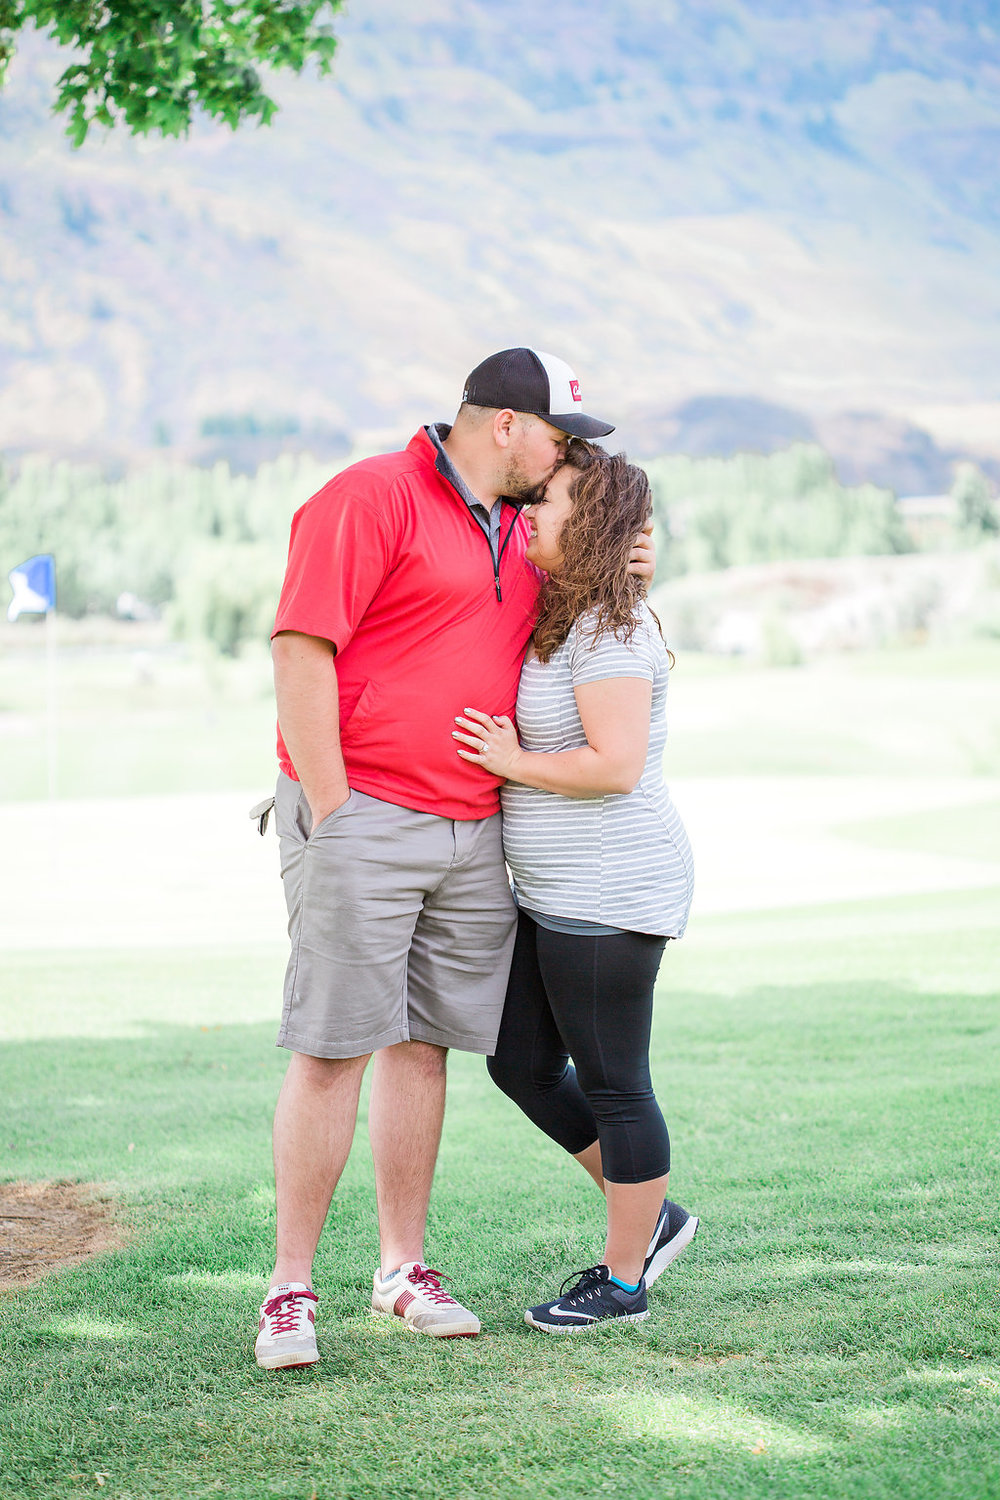 Golf Course Proposal | 9th Hole Proposal | Golf Course Photo Session | Beautiful Engagement Session | Seattle Wedding Photographer | Surprise Proposal | Beautiful Posing with Couples